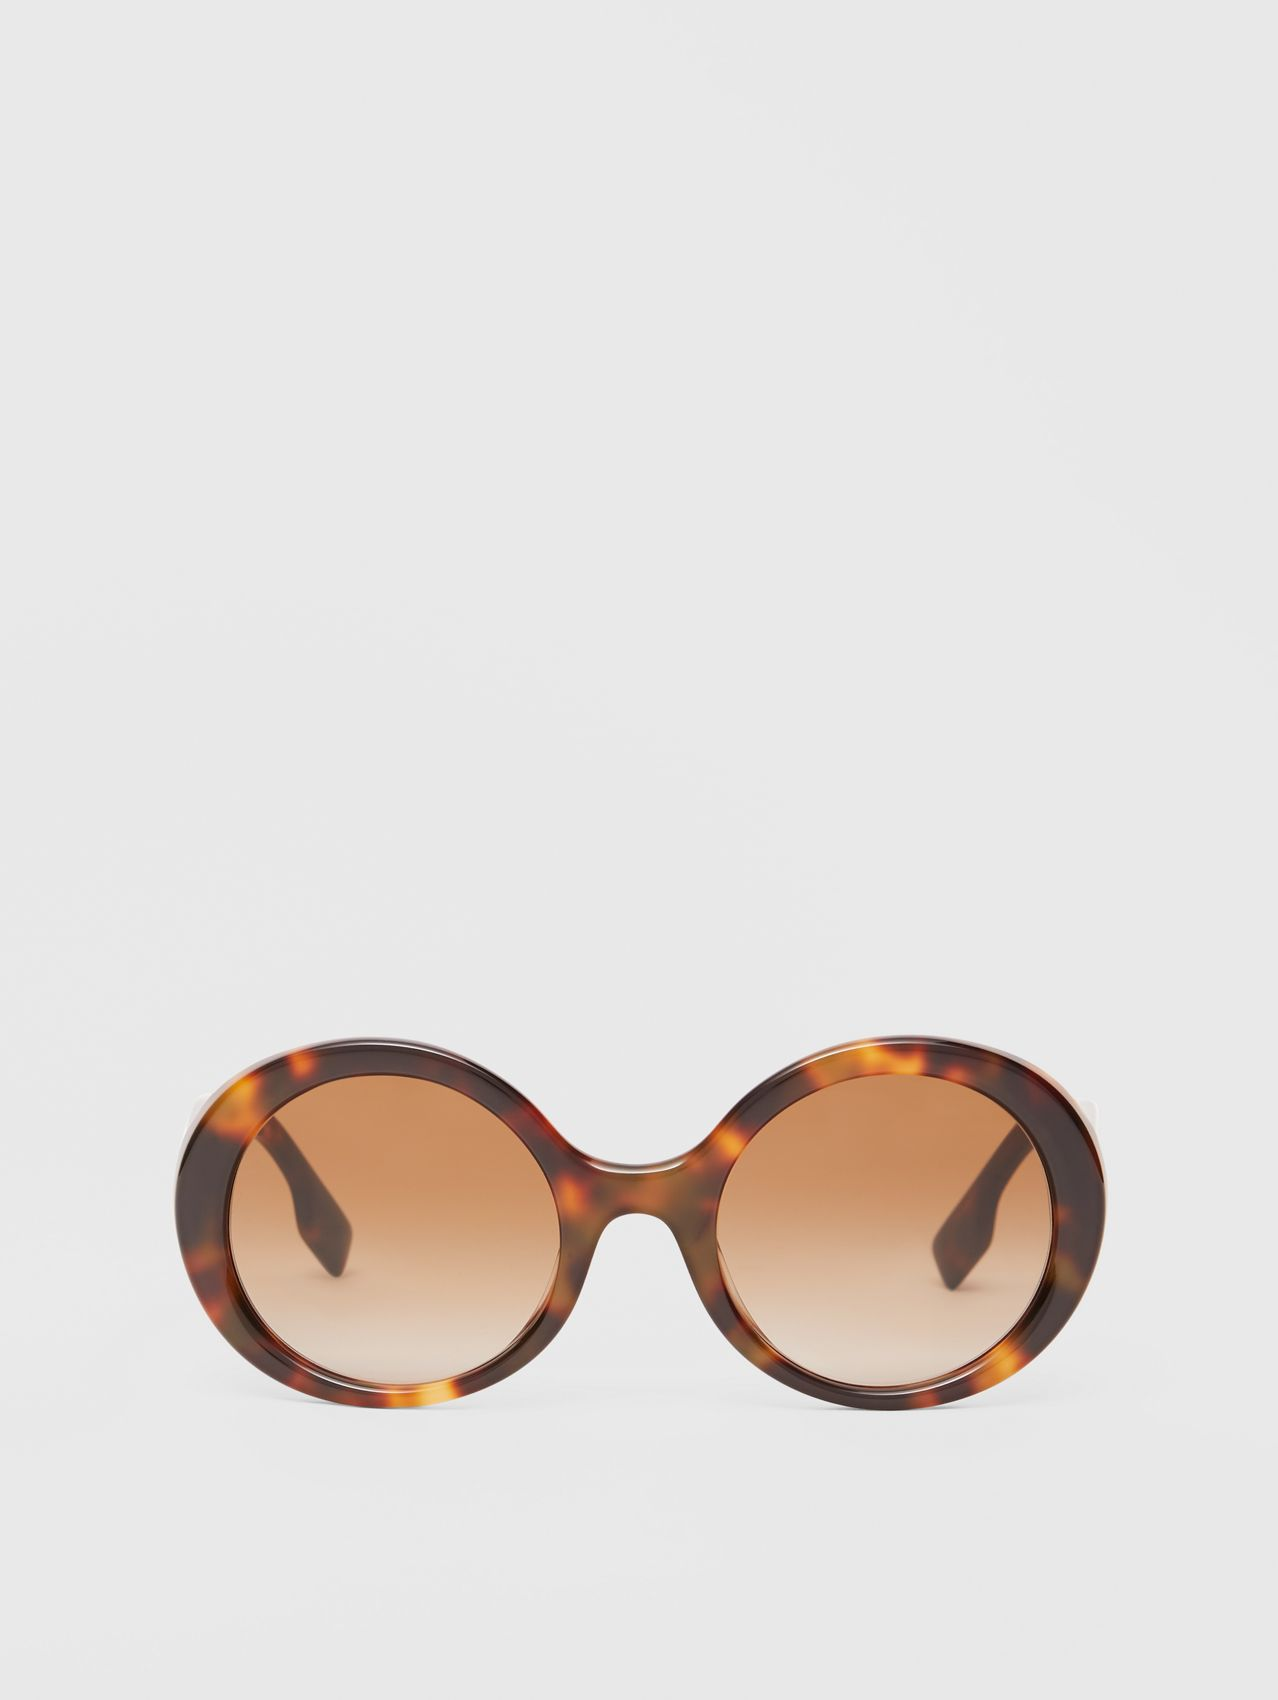 Oversized Round Frame Sunglasses in Dark Tortoise Amber